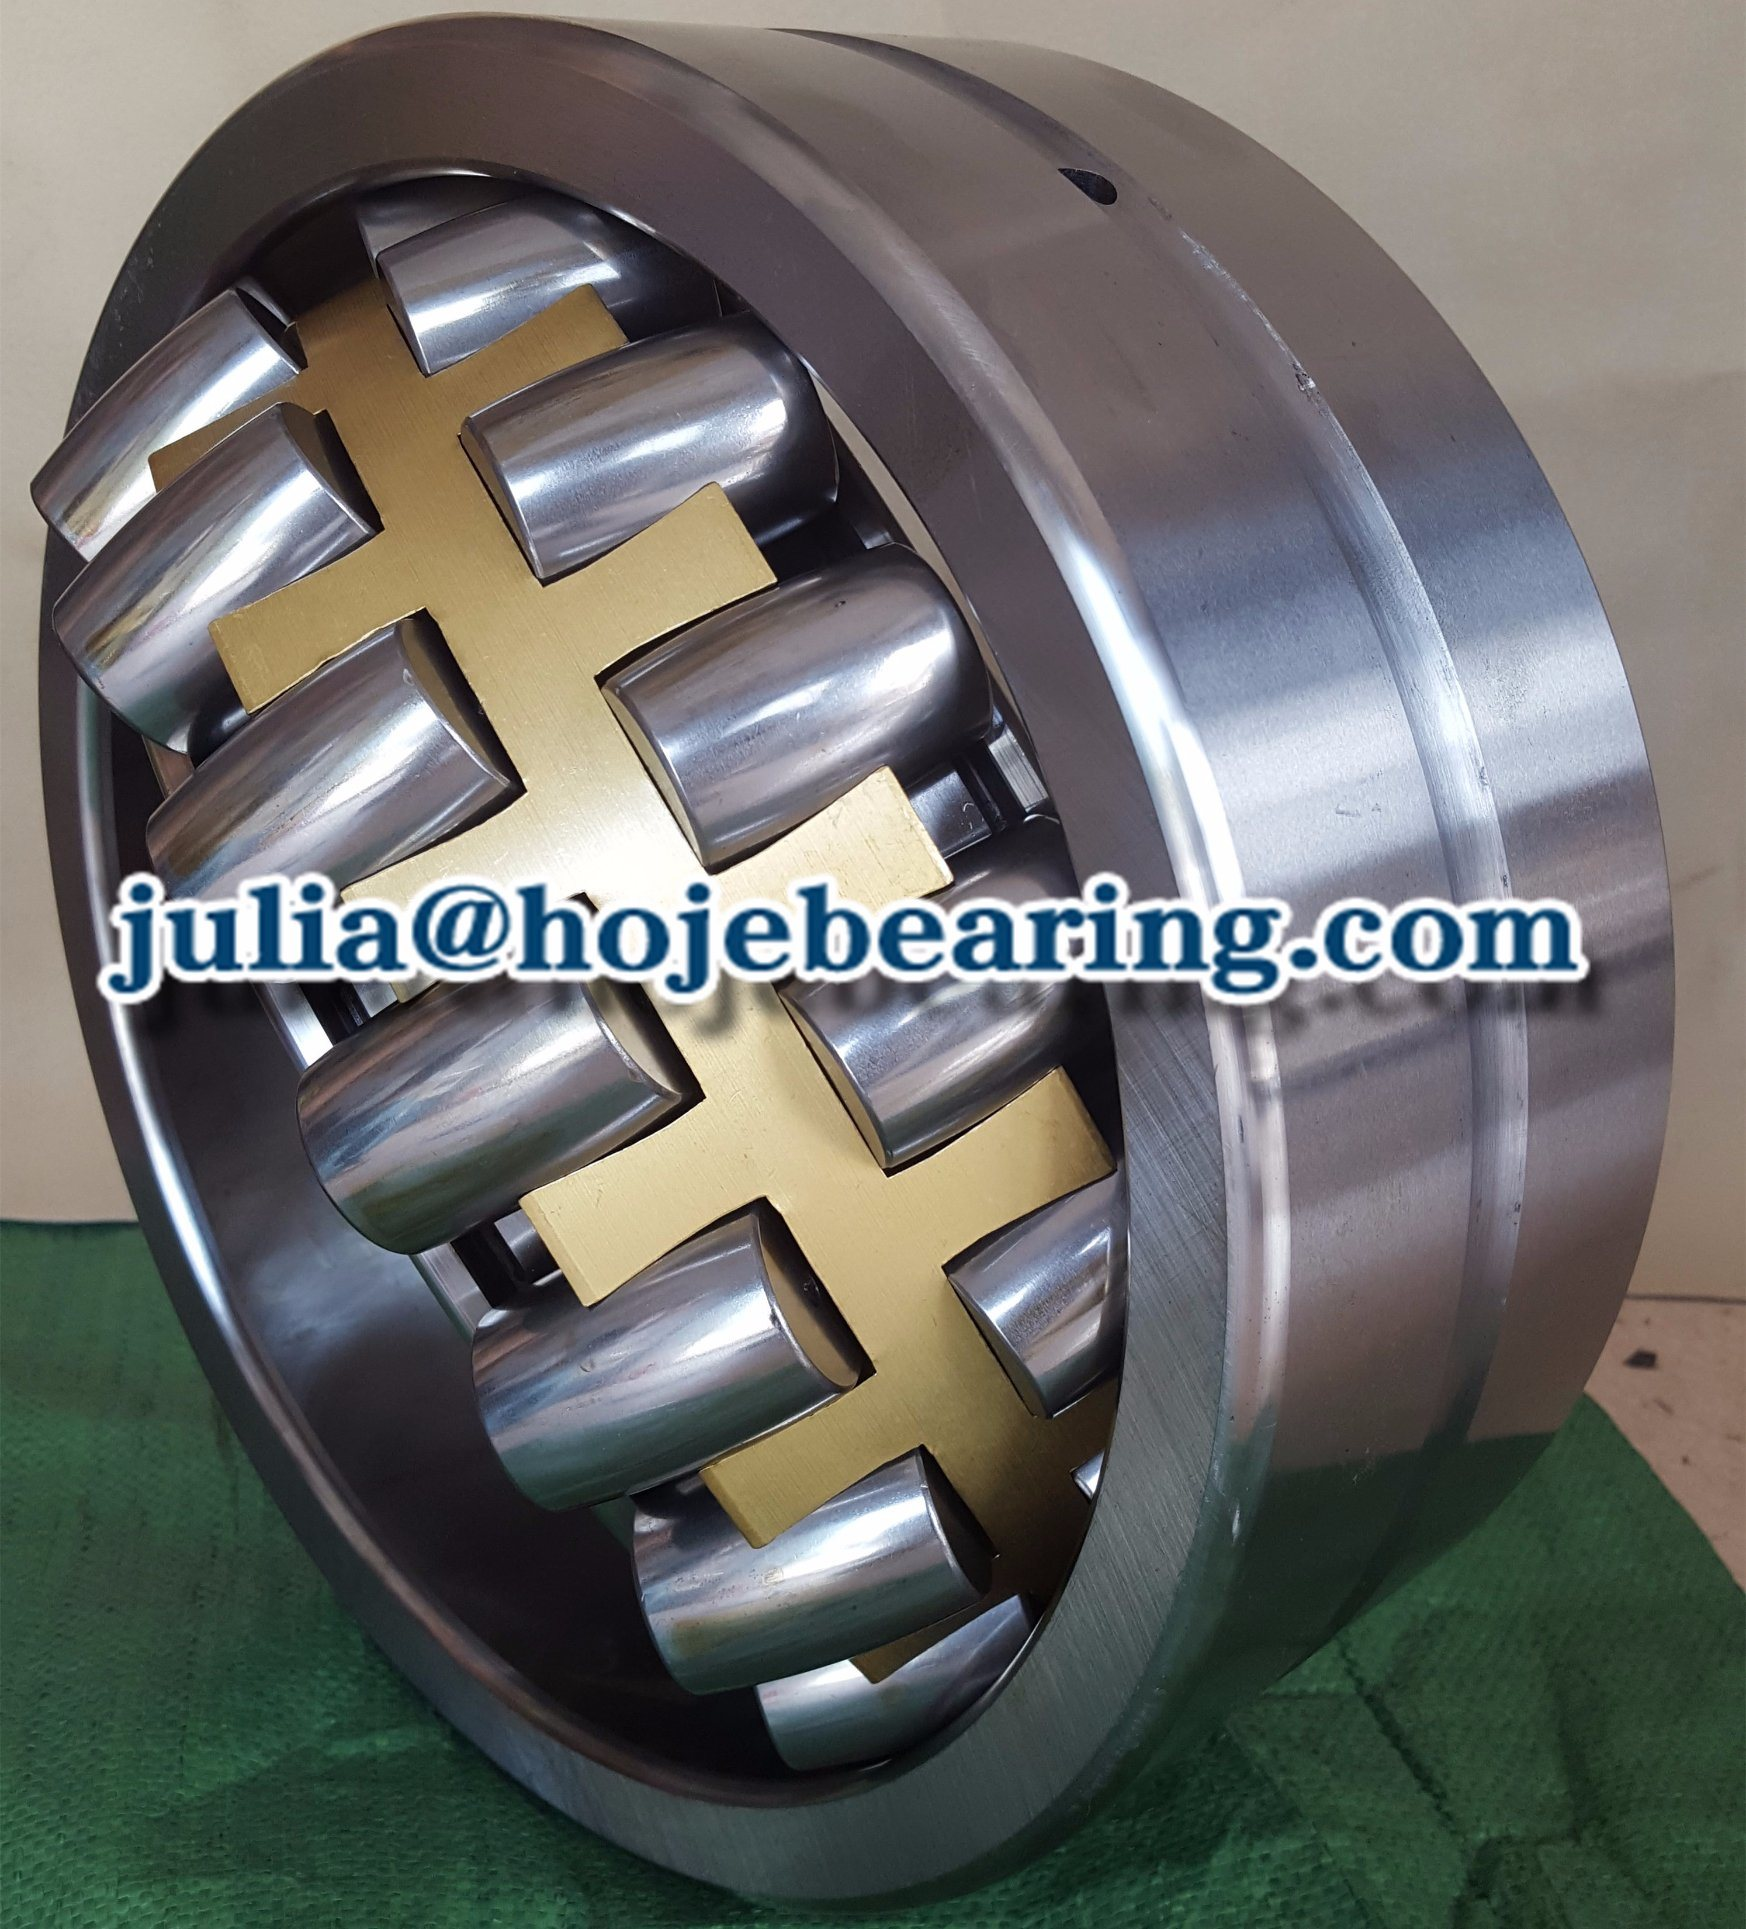 241/1000 Radail Bearing Spherical Roller Bearing 240/1000 SKF Bearings Manufature